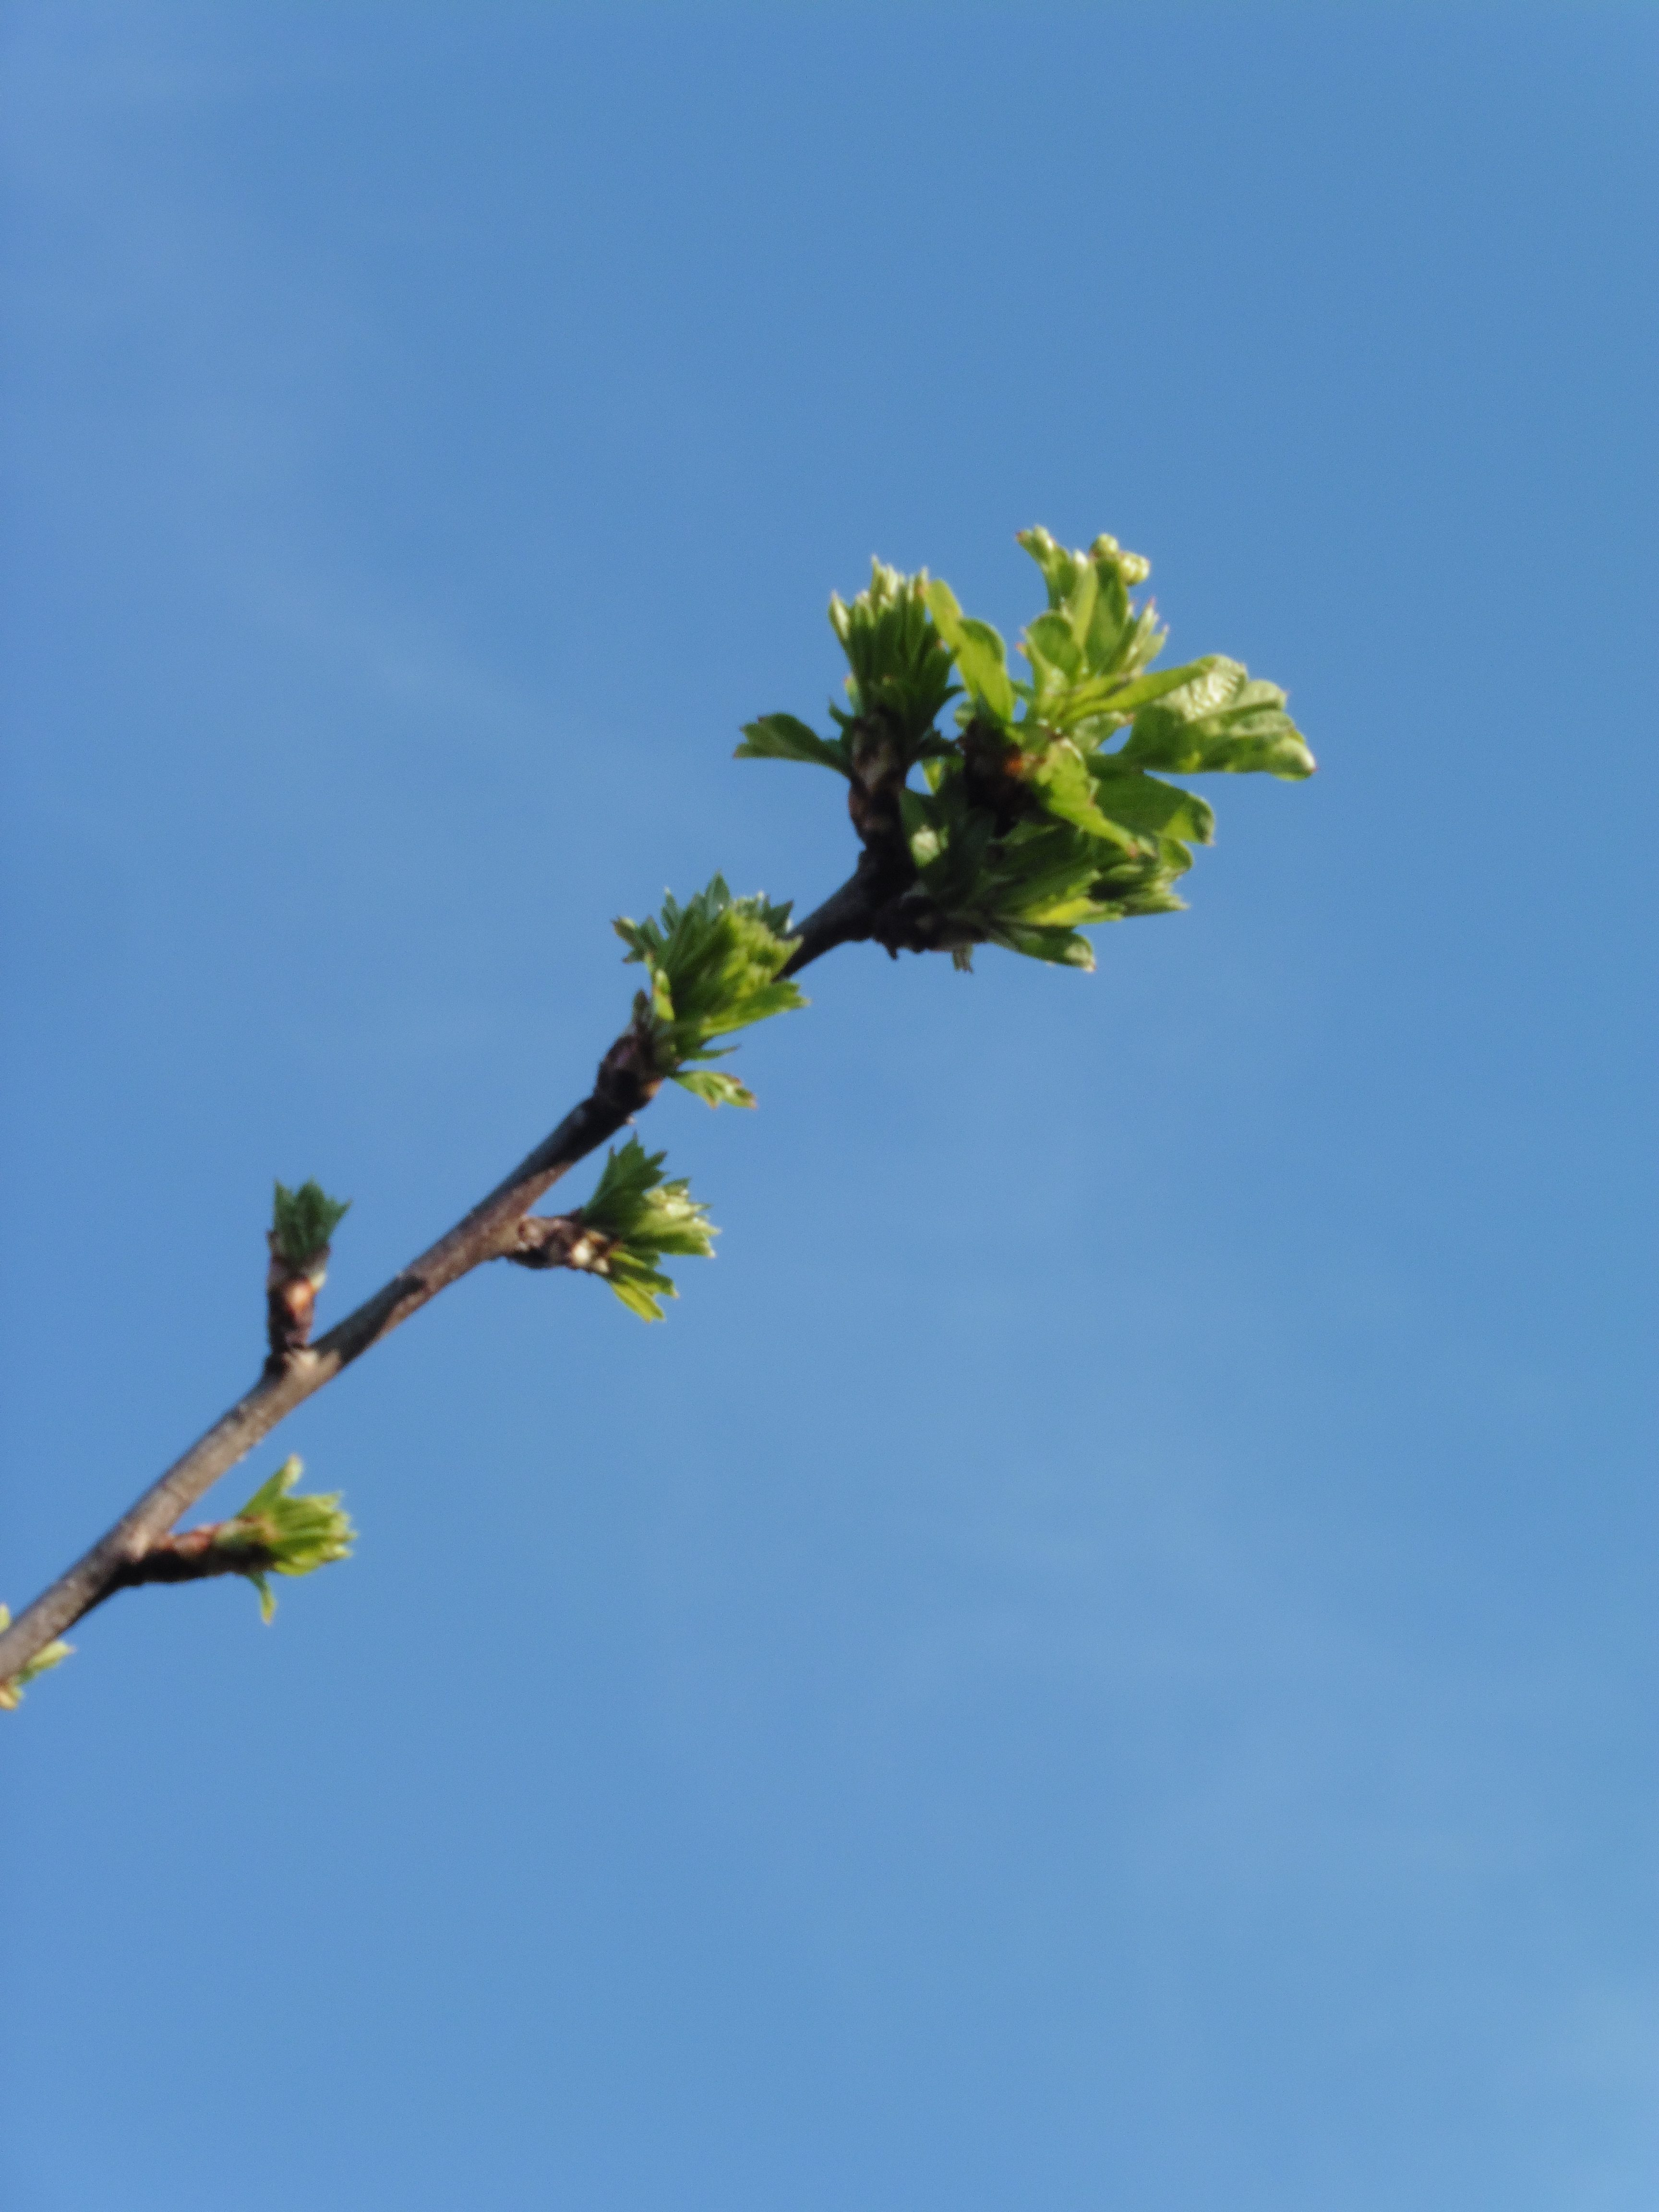 flowerbuds and leaves against blue sky